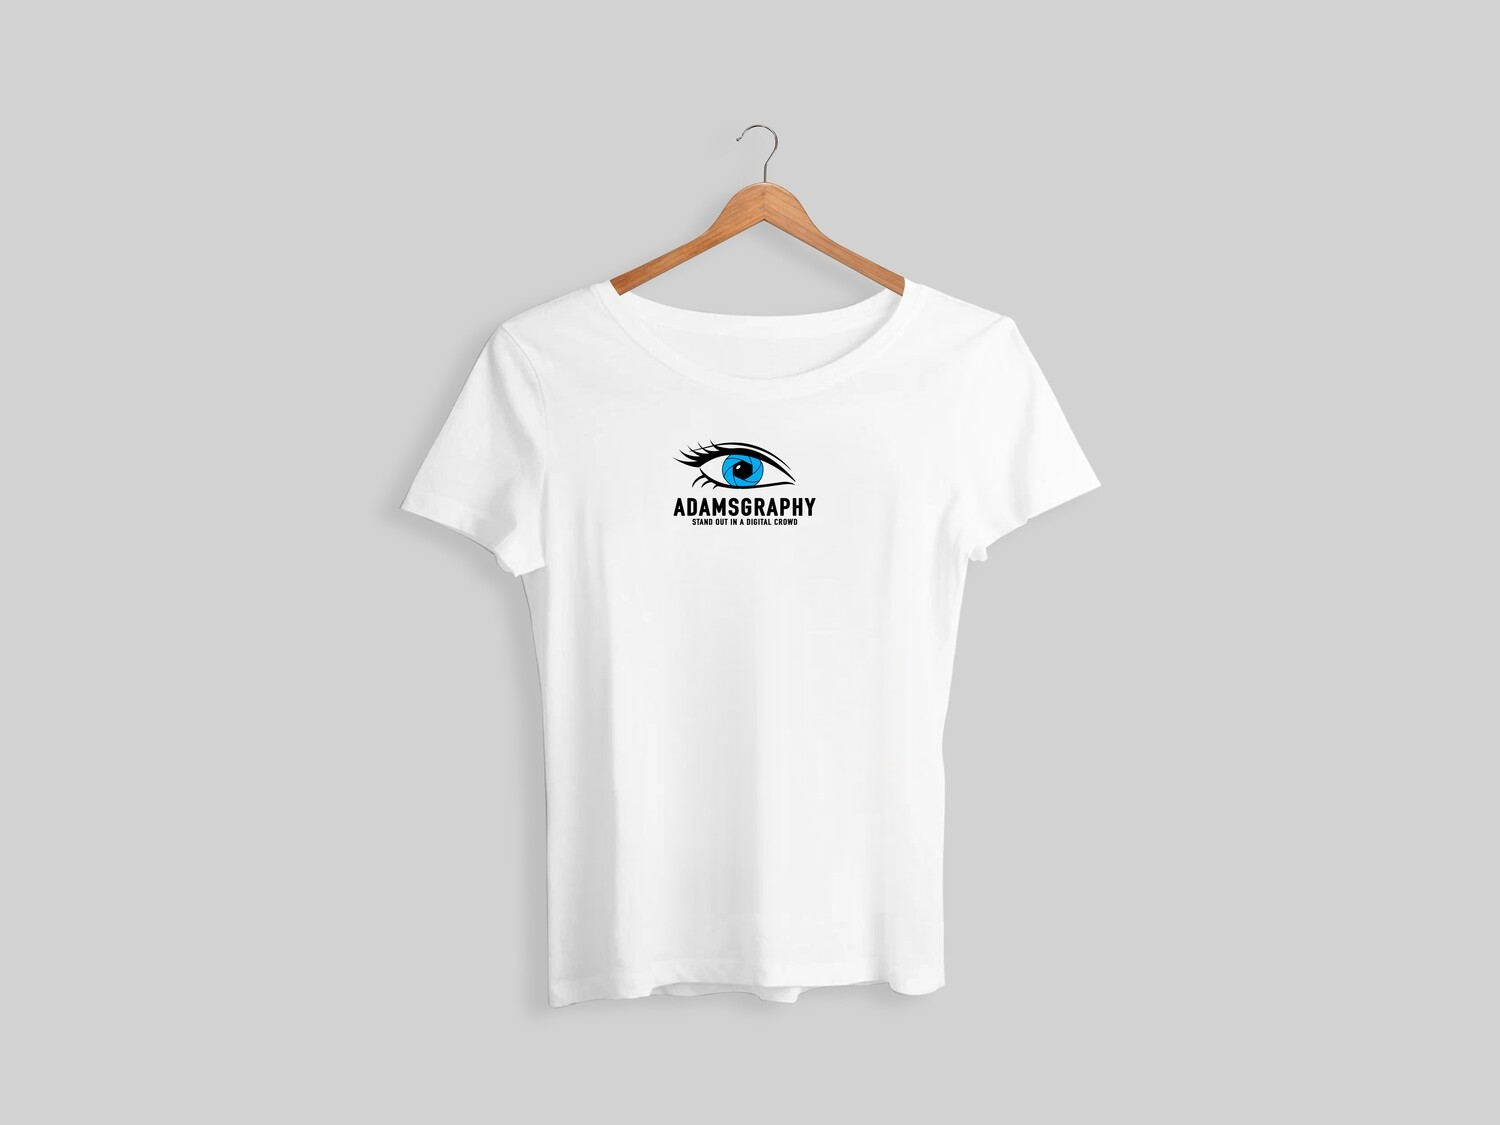 Adamsgraphy T-shirt in White Colour.